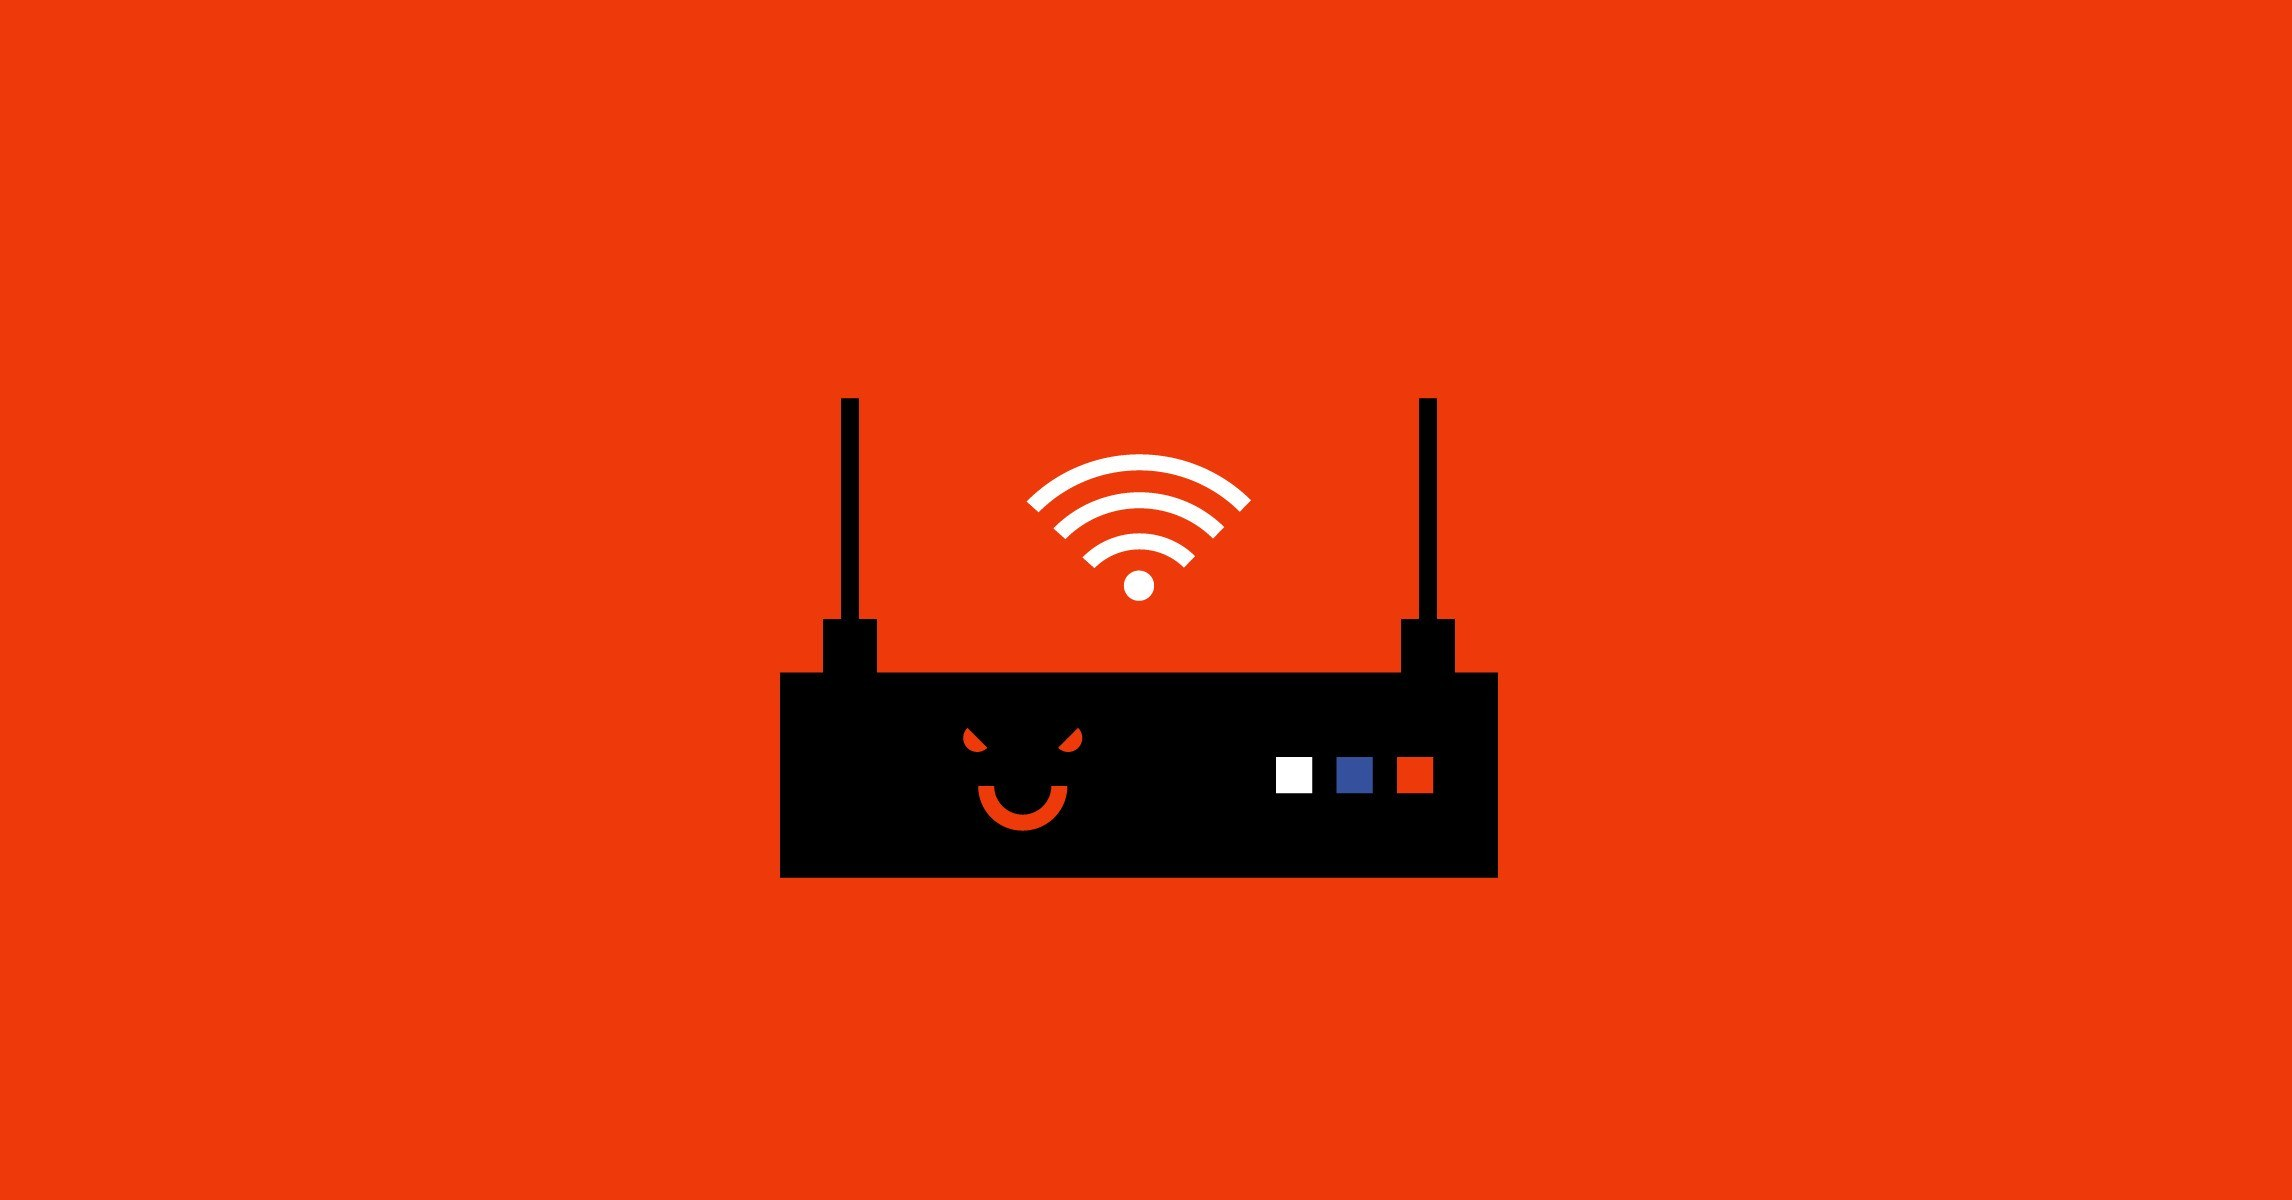 Malware infecting Home Office Routers